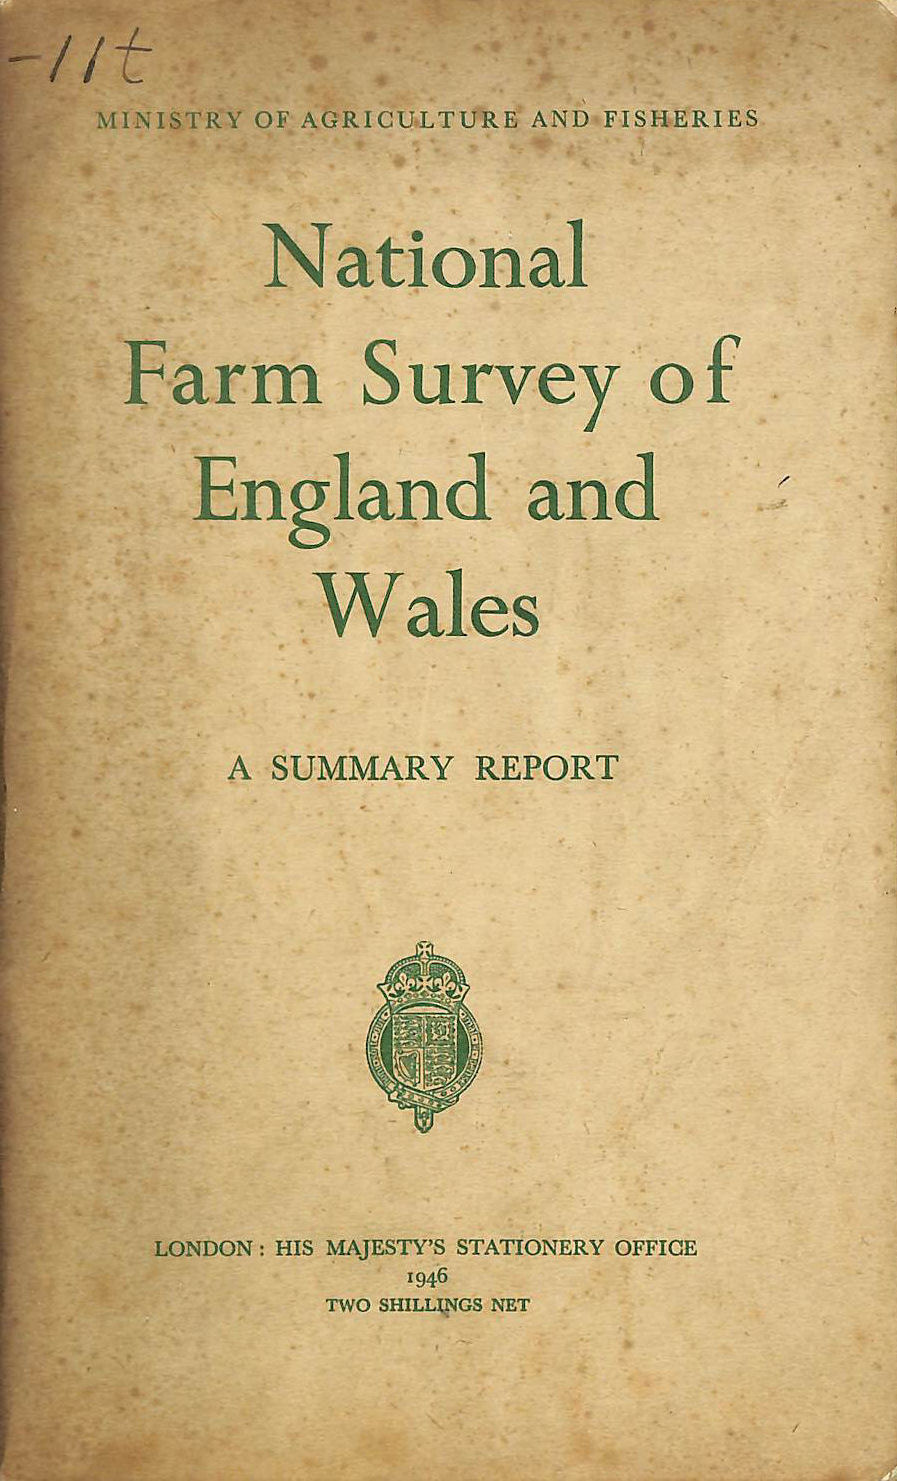 Image for National Farm Survey of England and Wales (1941 - 1943). A Summary Report.